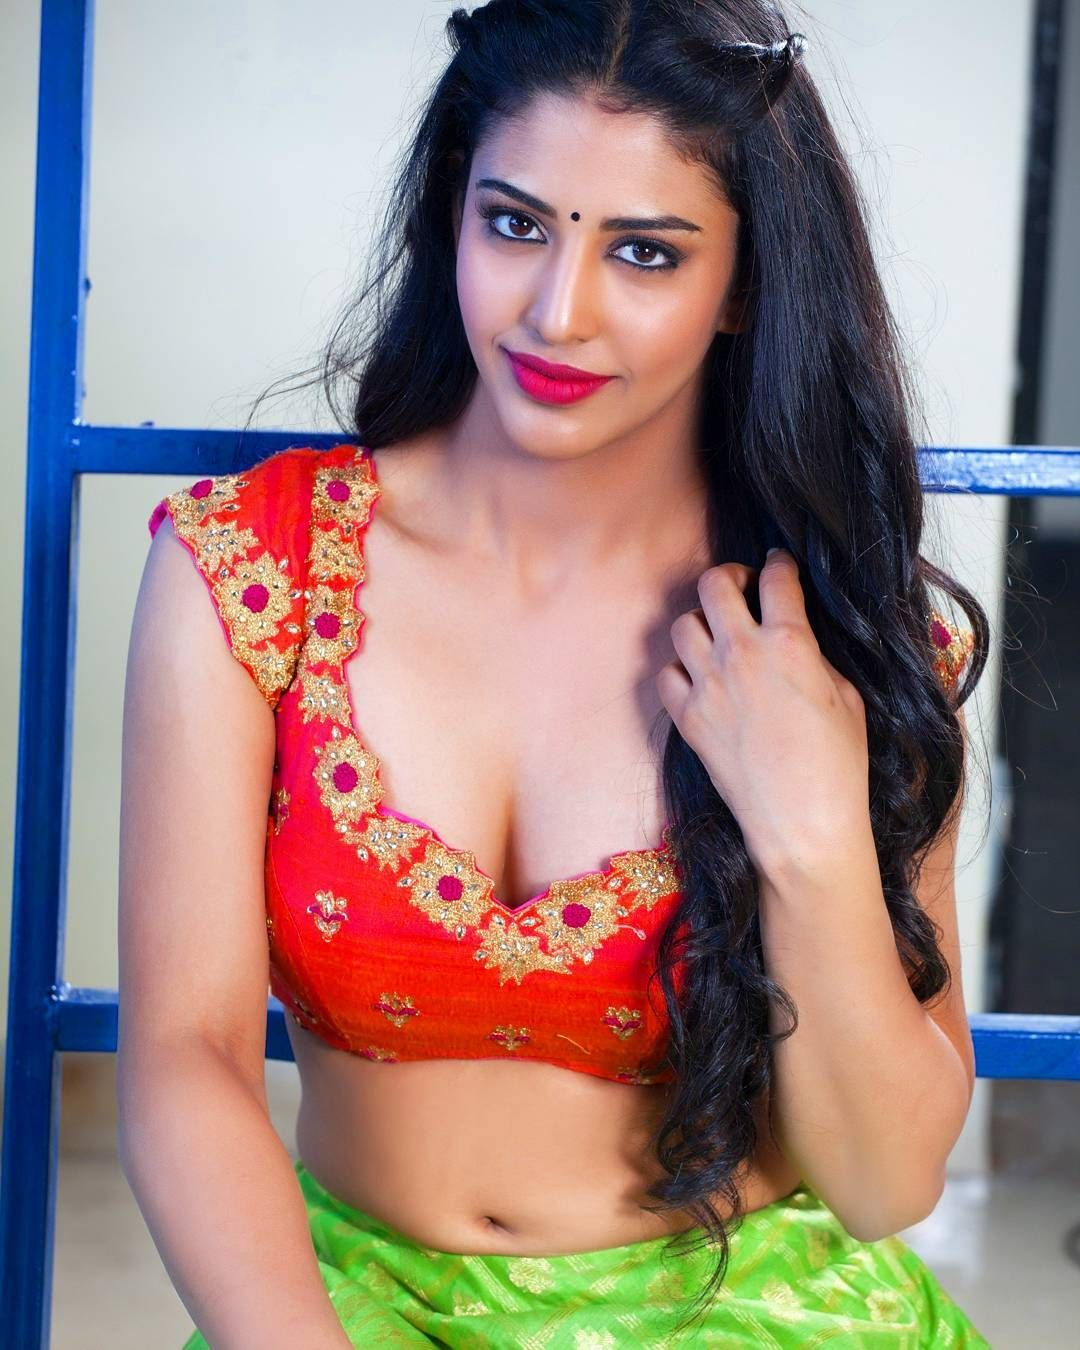 Sexy hot indian girls photo